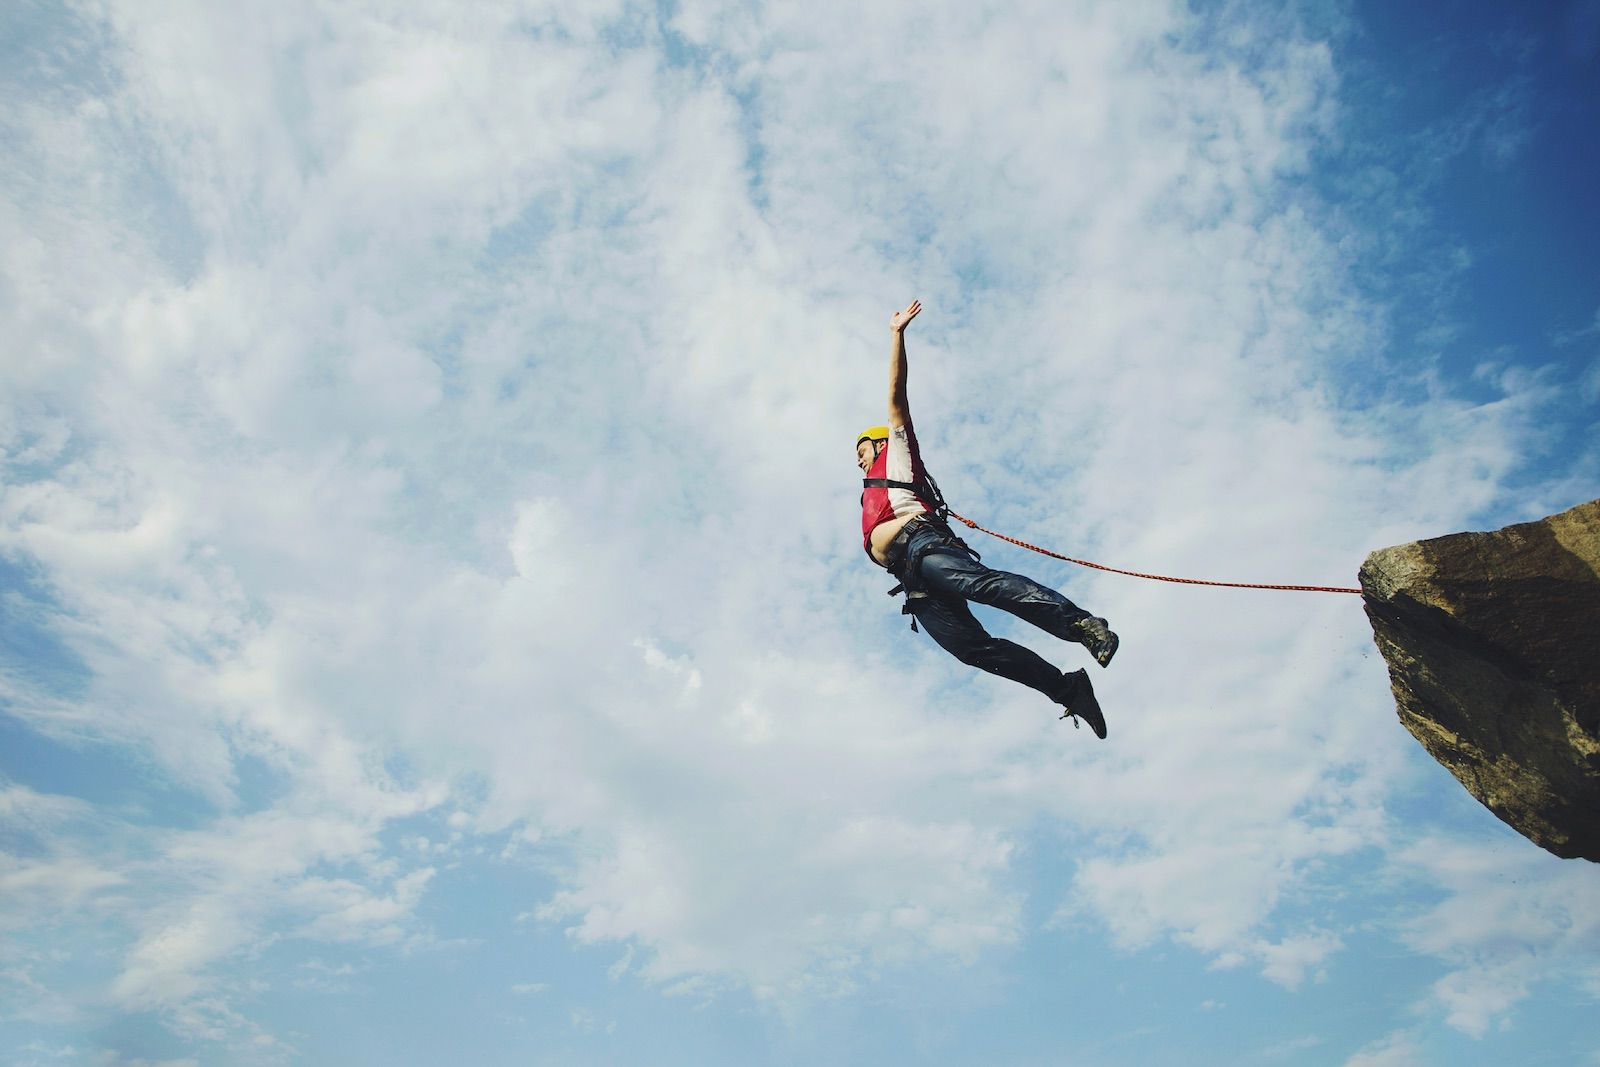 Bungee man jumps into a canyon from a cliff, adventurous things to do